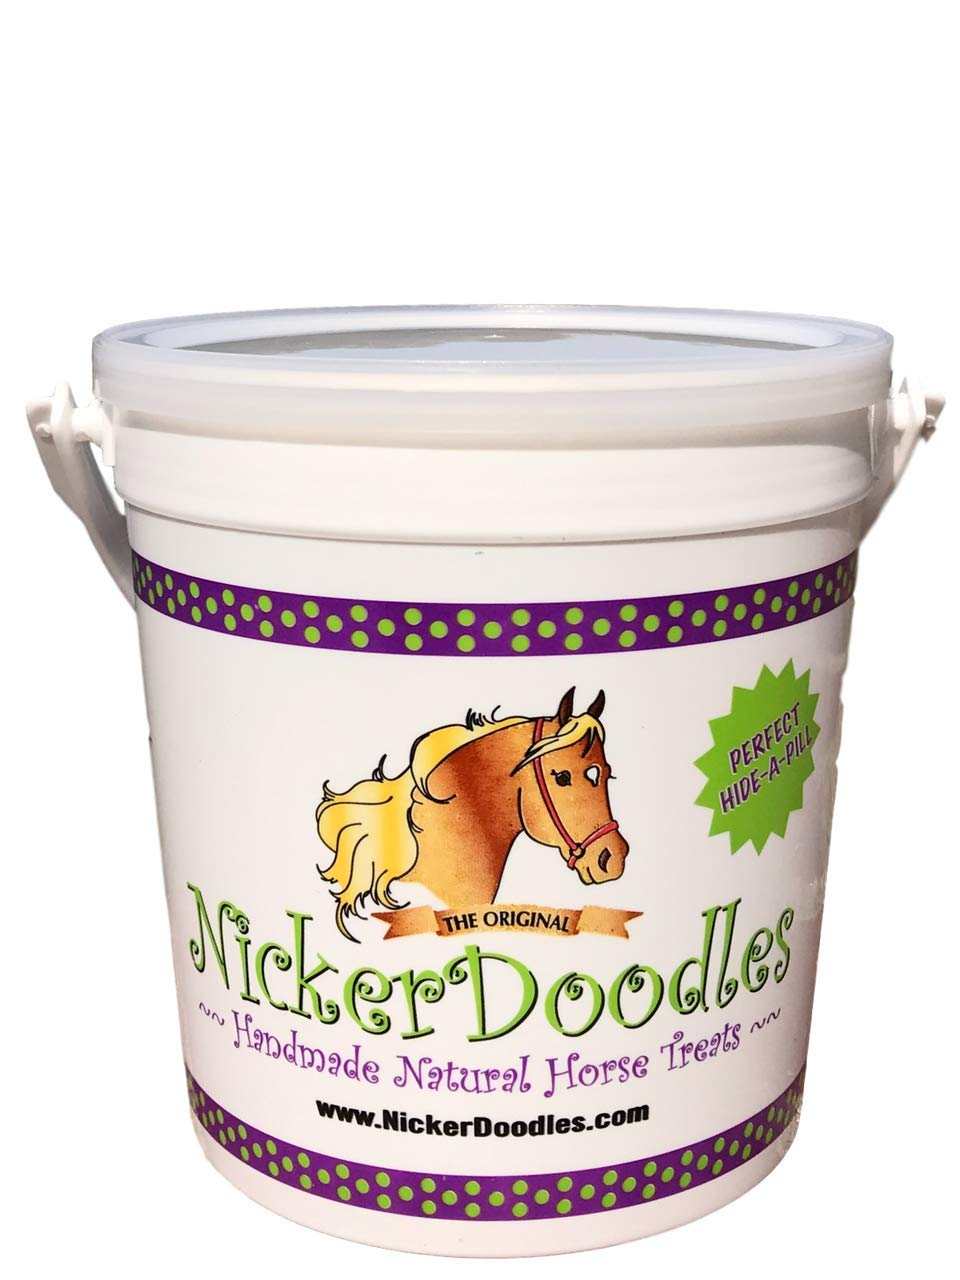 Nickerdoodles 5 Pound Pail by The original NickerDoodles